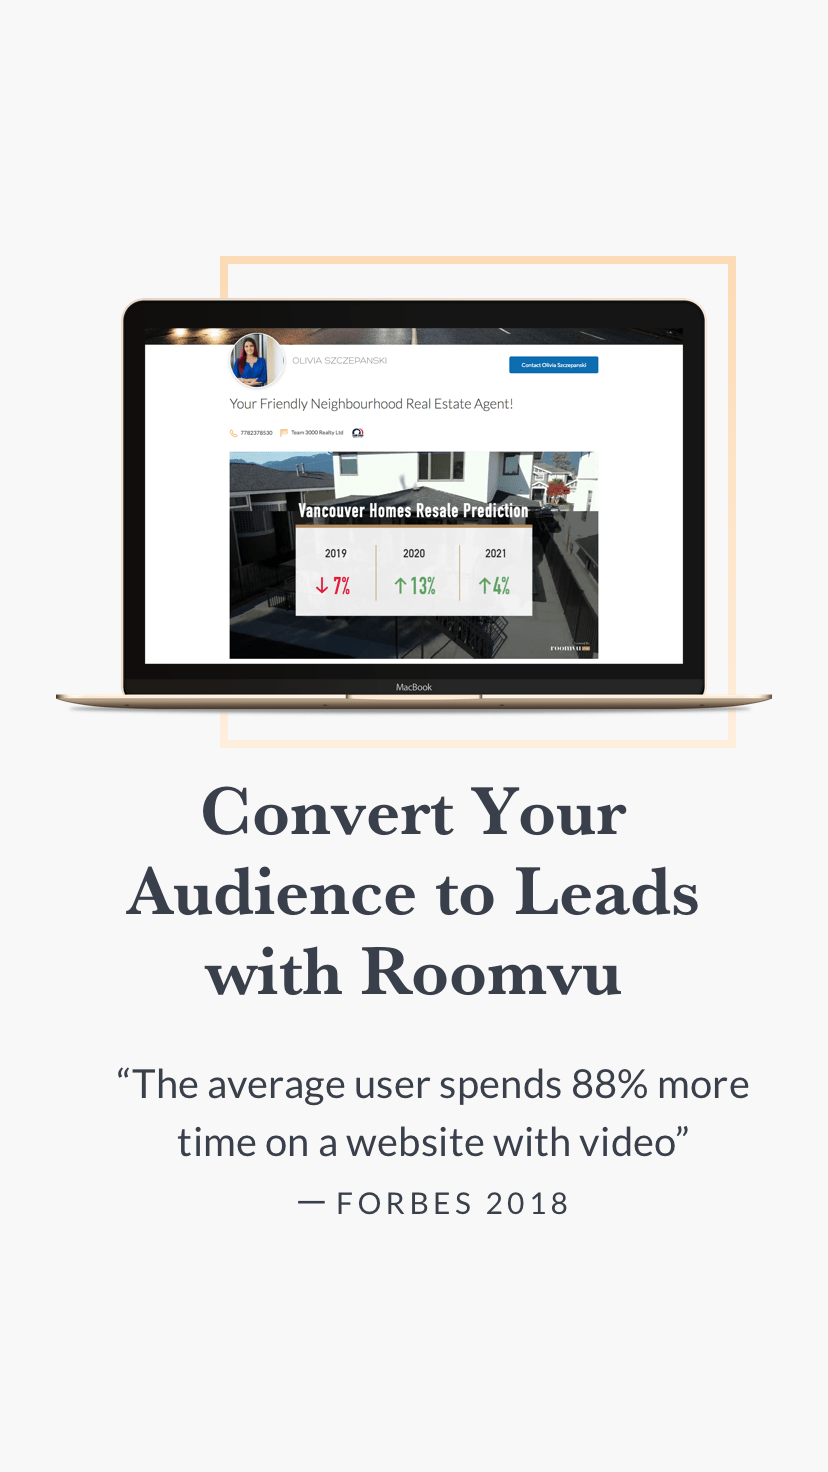 Sign Up with Roomvu